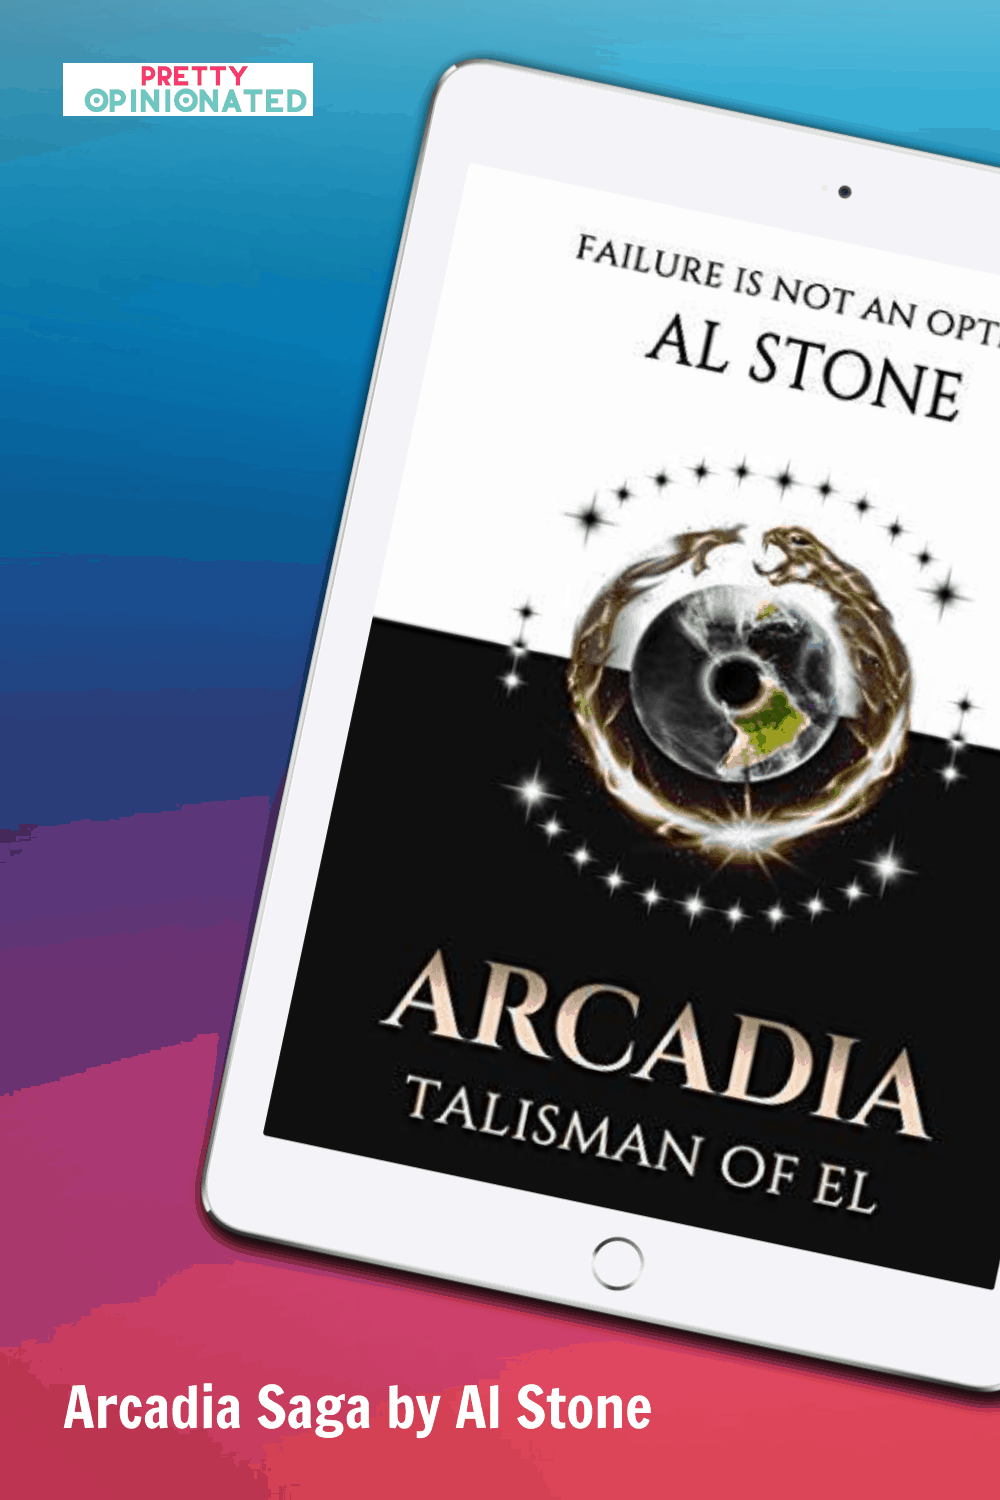 If you're craving a new YA fantasy read that really pulls you in, you'll definitely want to check out Arcadia by Al Stone! The complete trilogy is currently available on Amazon.